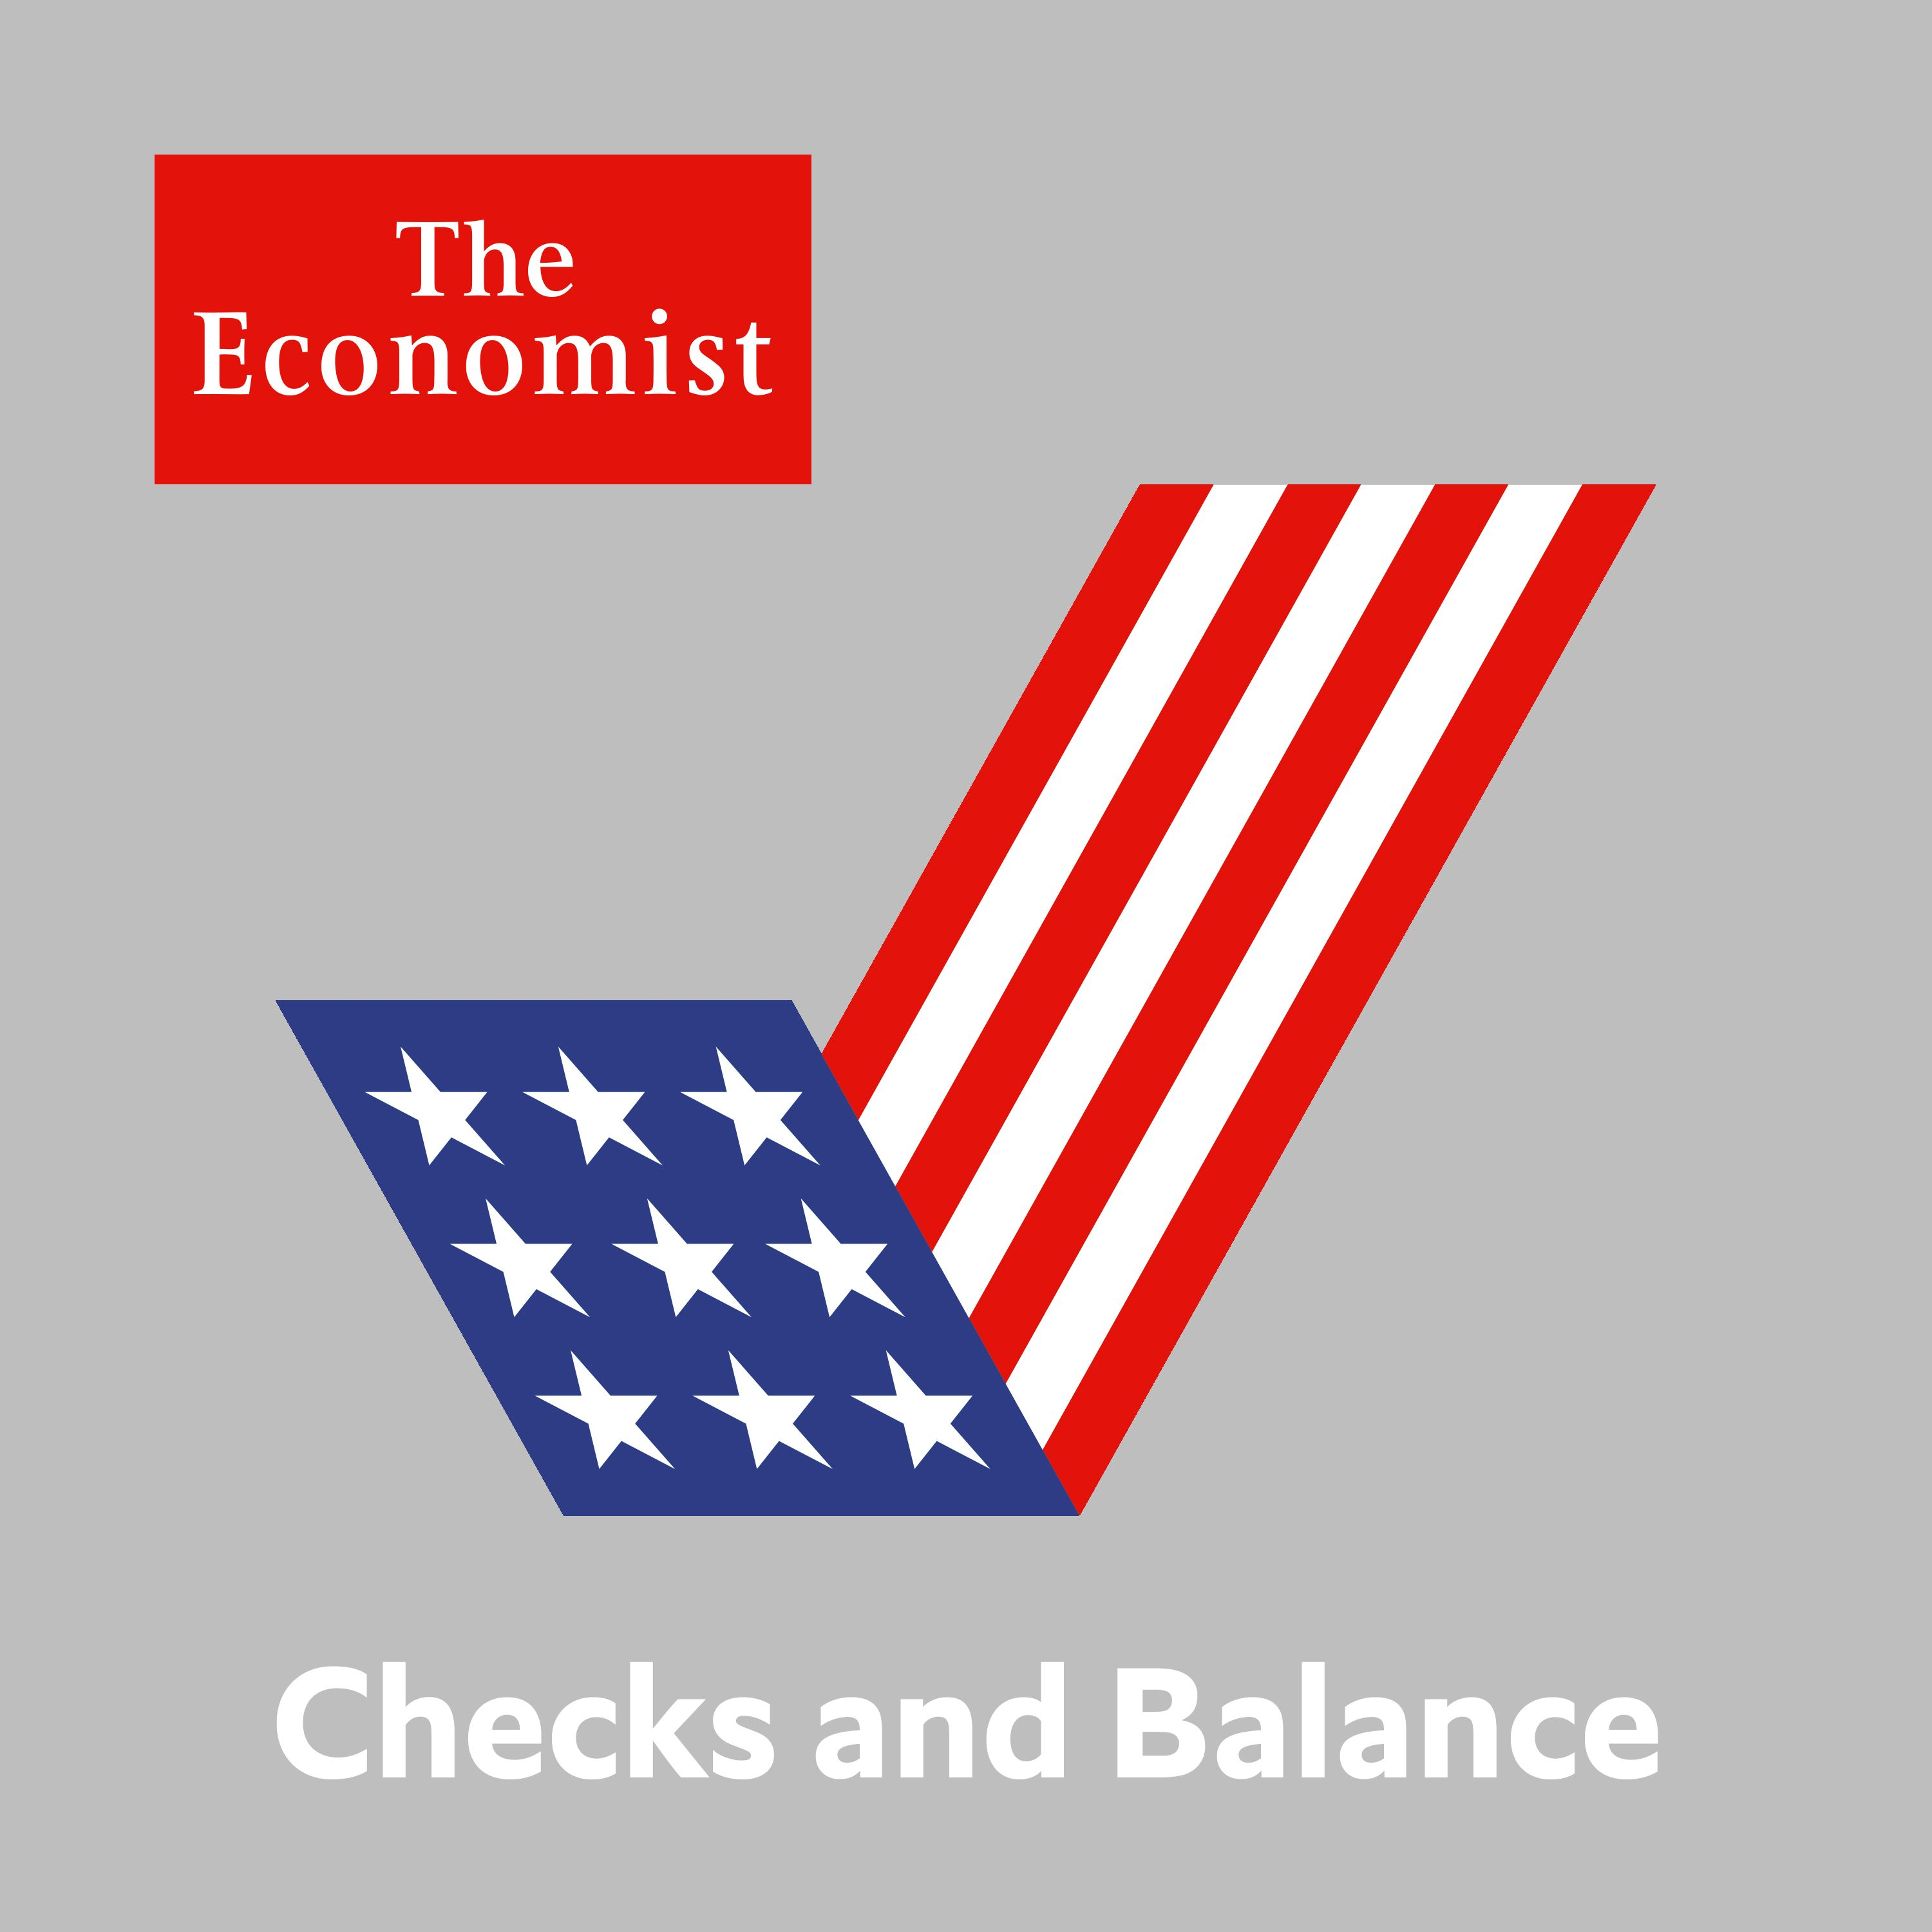 Checks and Balance: Out of control